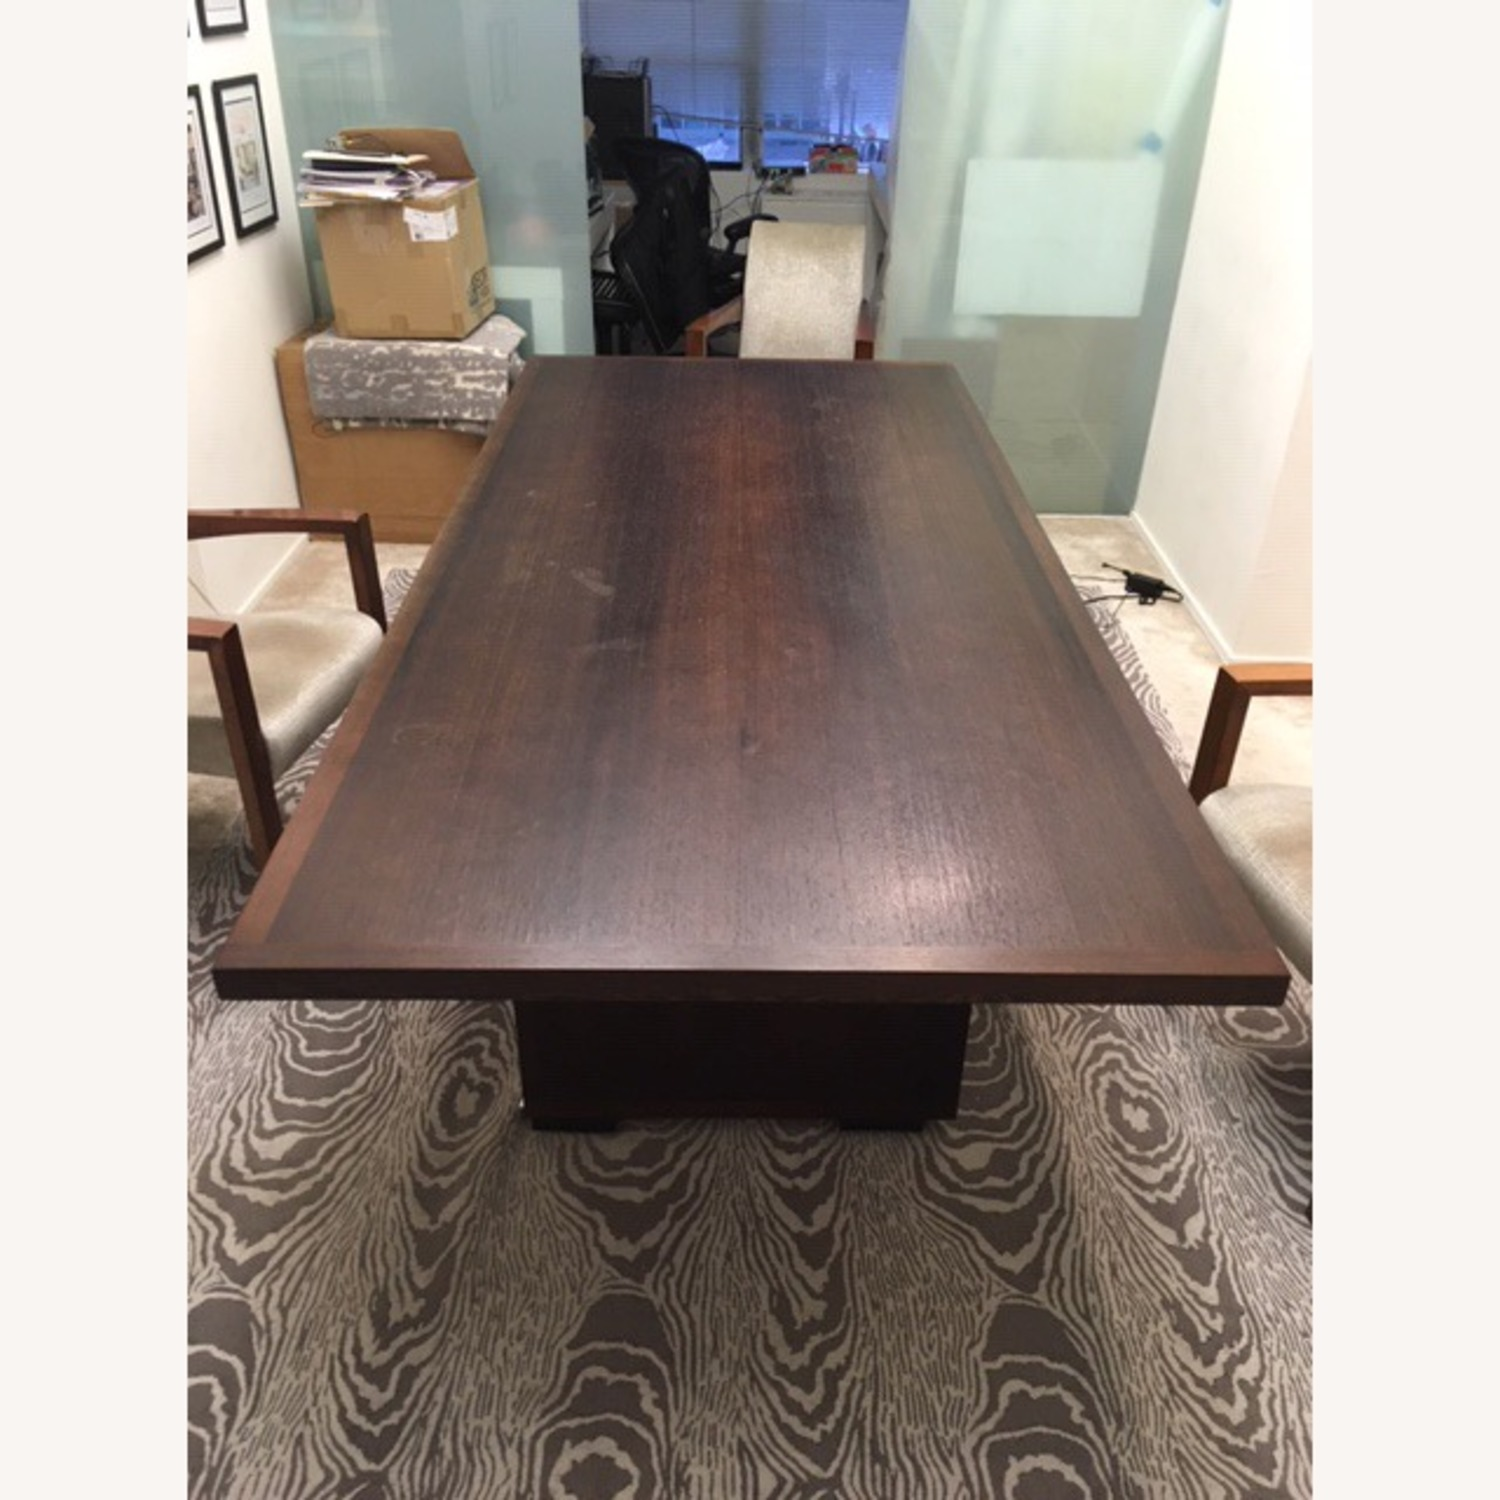 B&B Italia Large Wenge Veneer Dining Table - image-4